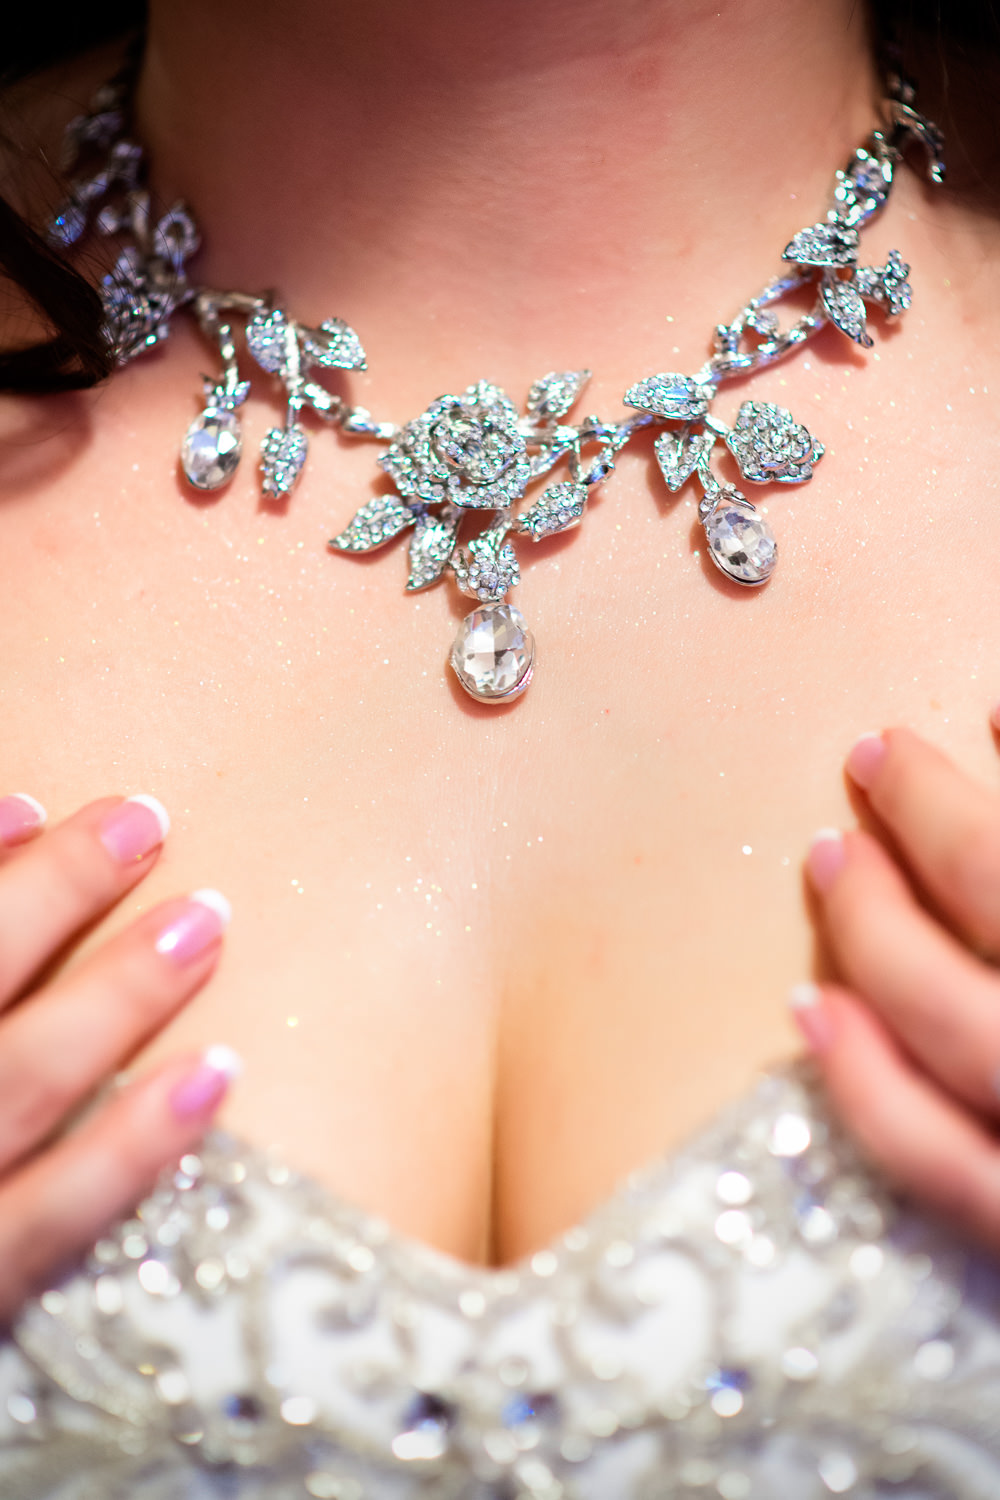 f27-photography-ventura-county-somis-hartley-botanica-wedding-bridal-closeup-jewlery-necklace-detail-shot